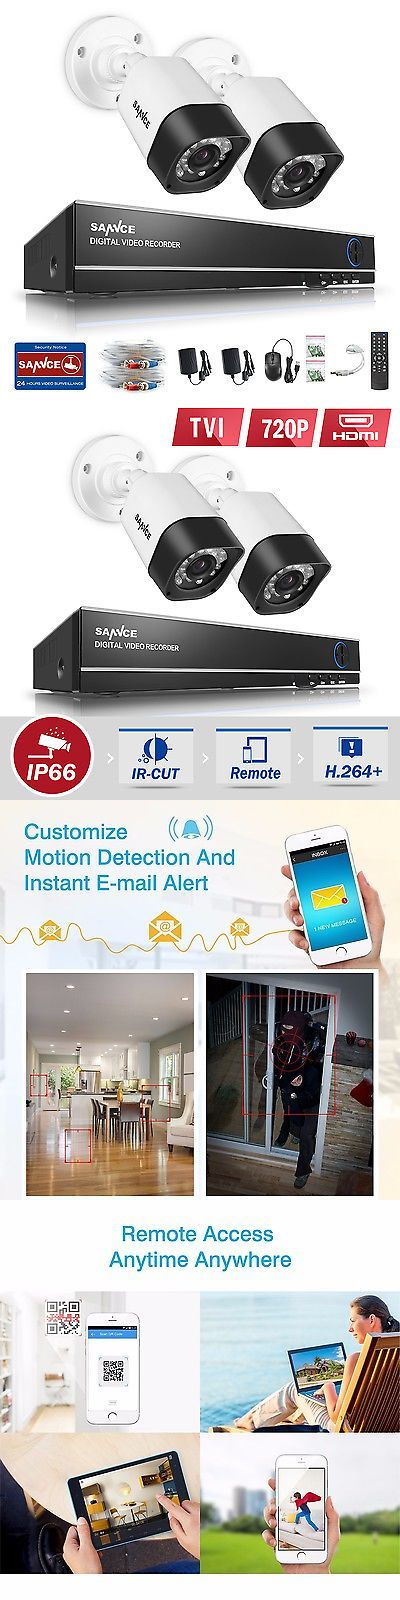 Security Cameras: Sannce 4Ch 1080N Dvr 720P 1500Tvl Home Outdoor Security 24Ir Camera System Alert BUY IT NOW ONLY: $59.99